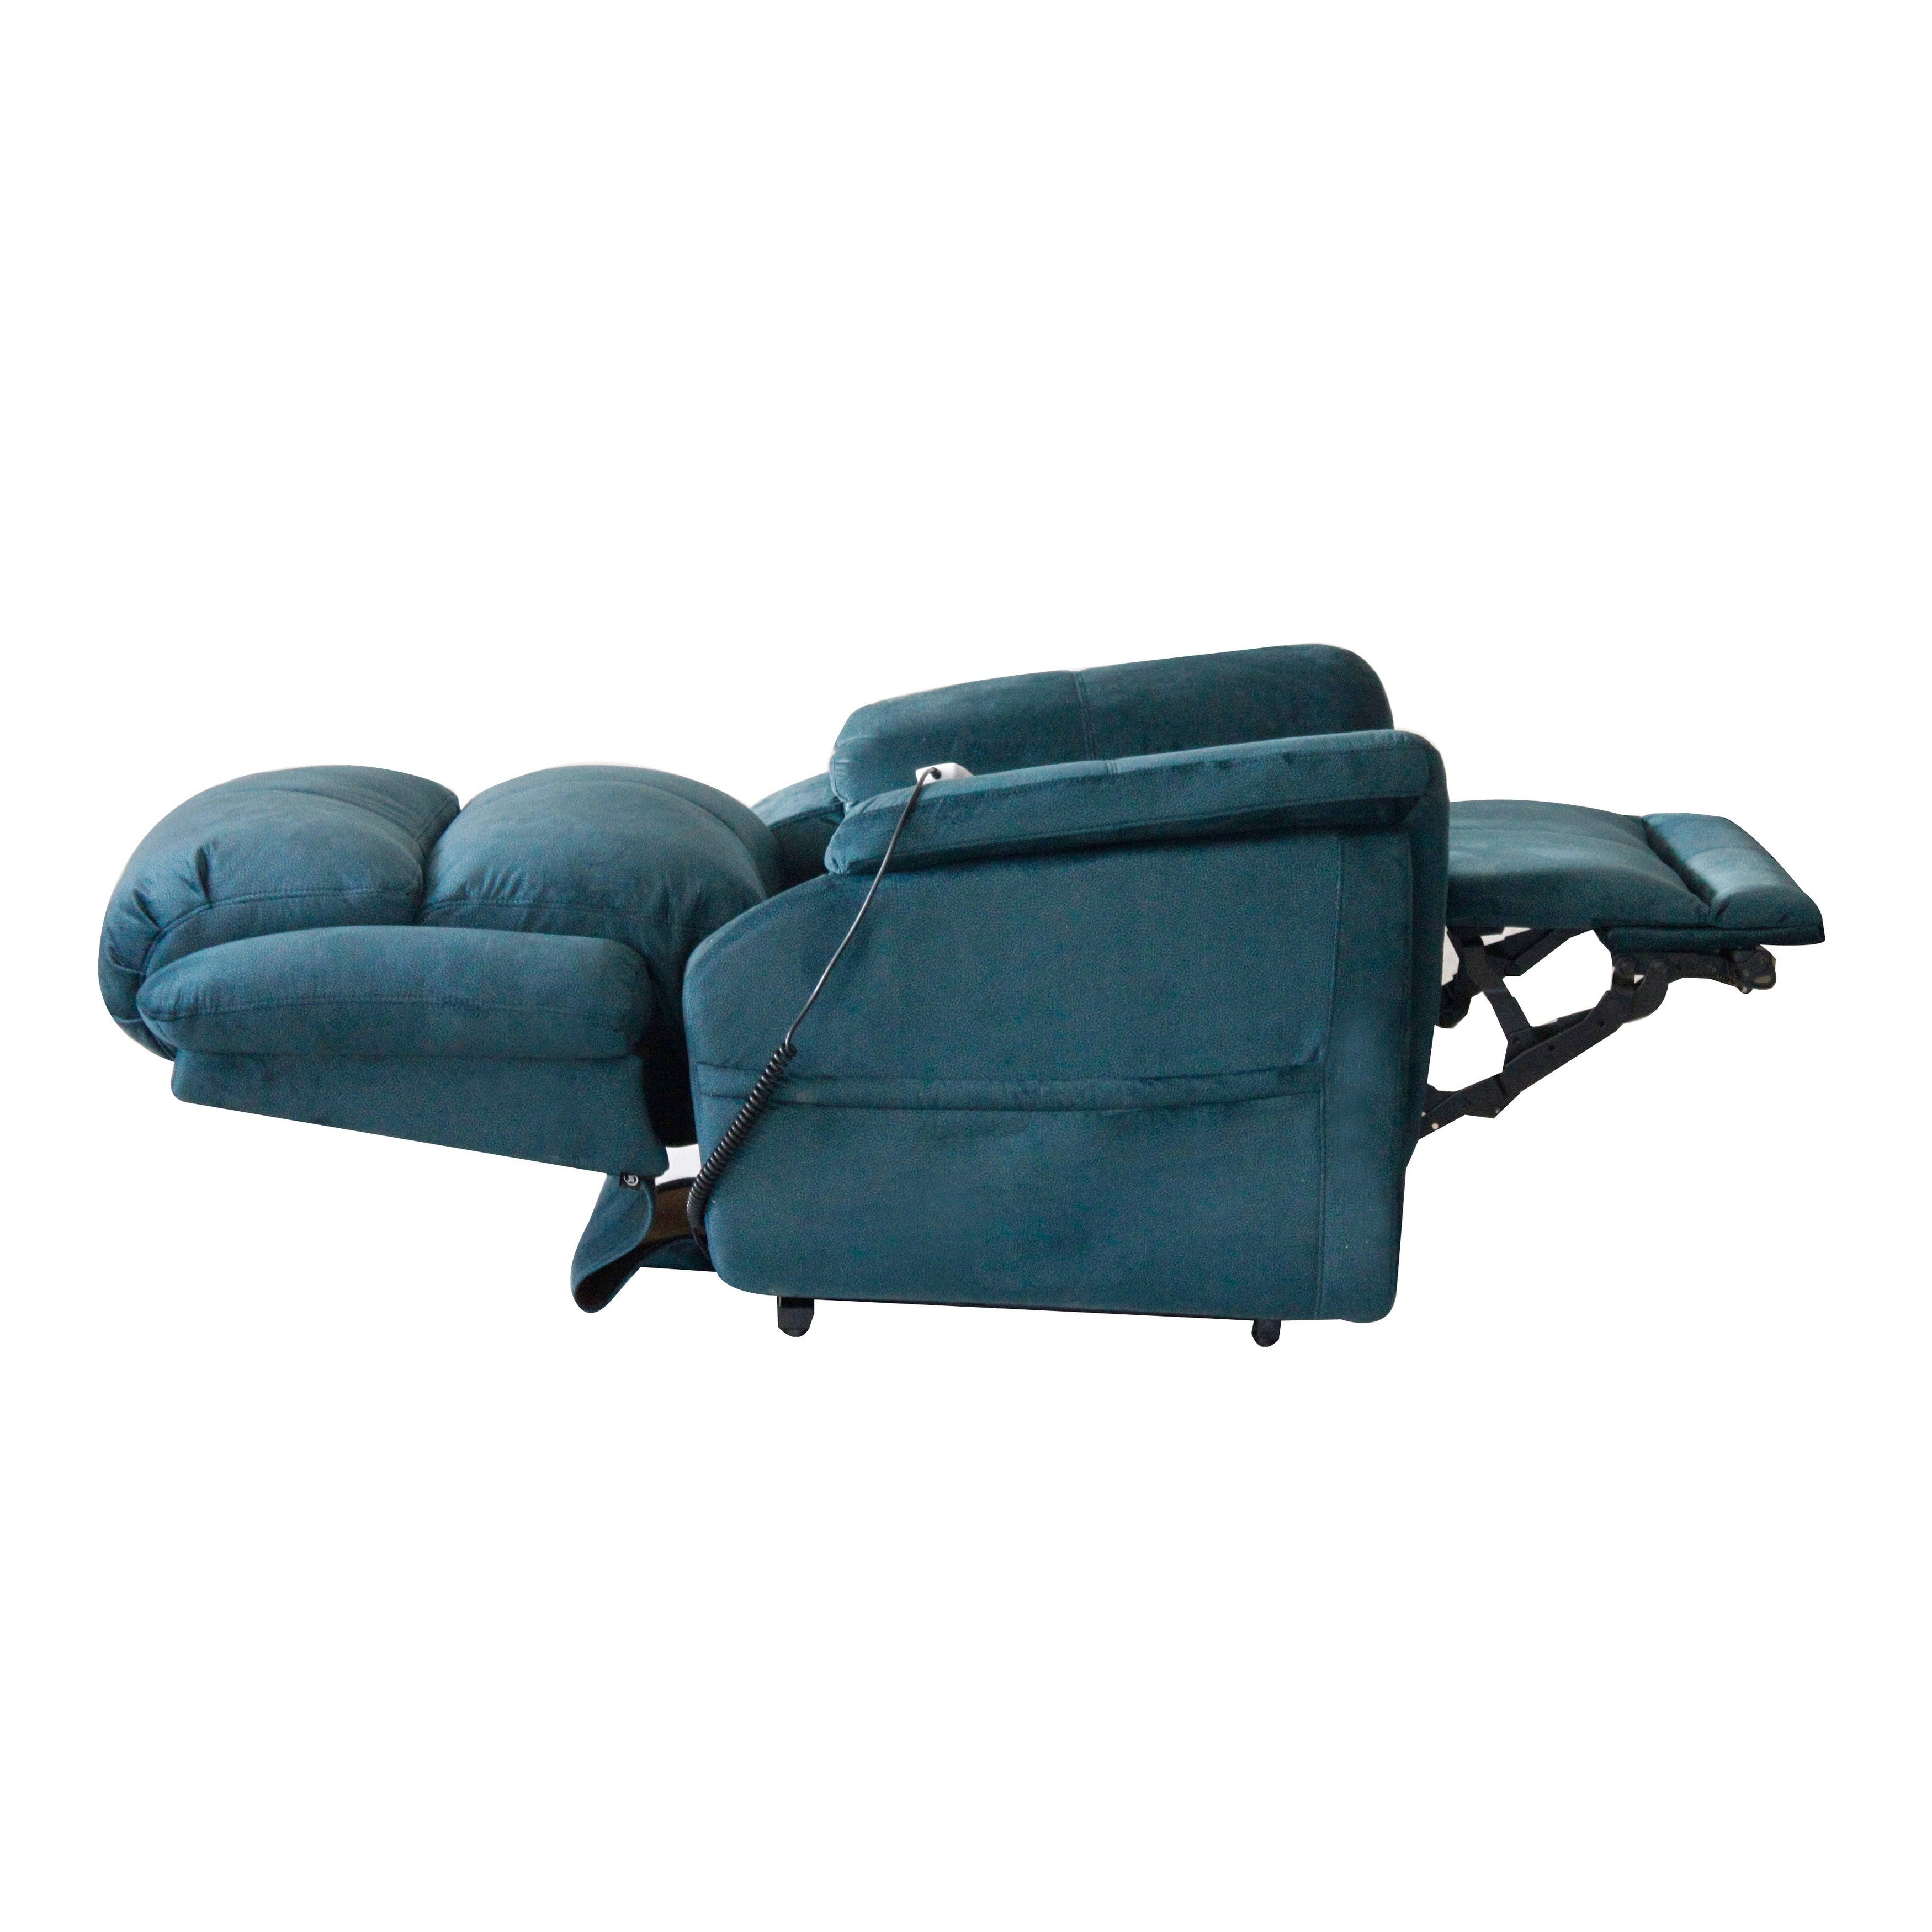 steel lift health serta recliner cordovan bristol in chair onekey product dansby